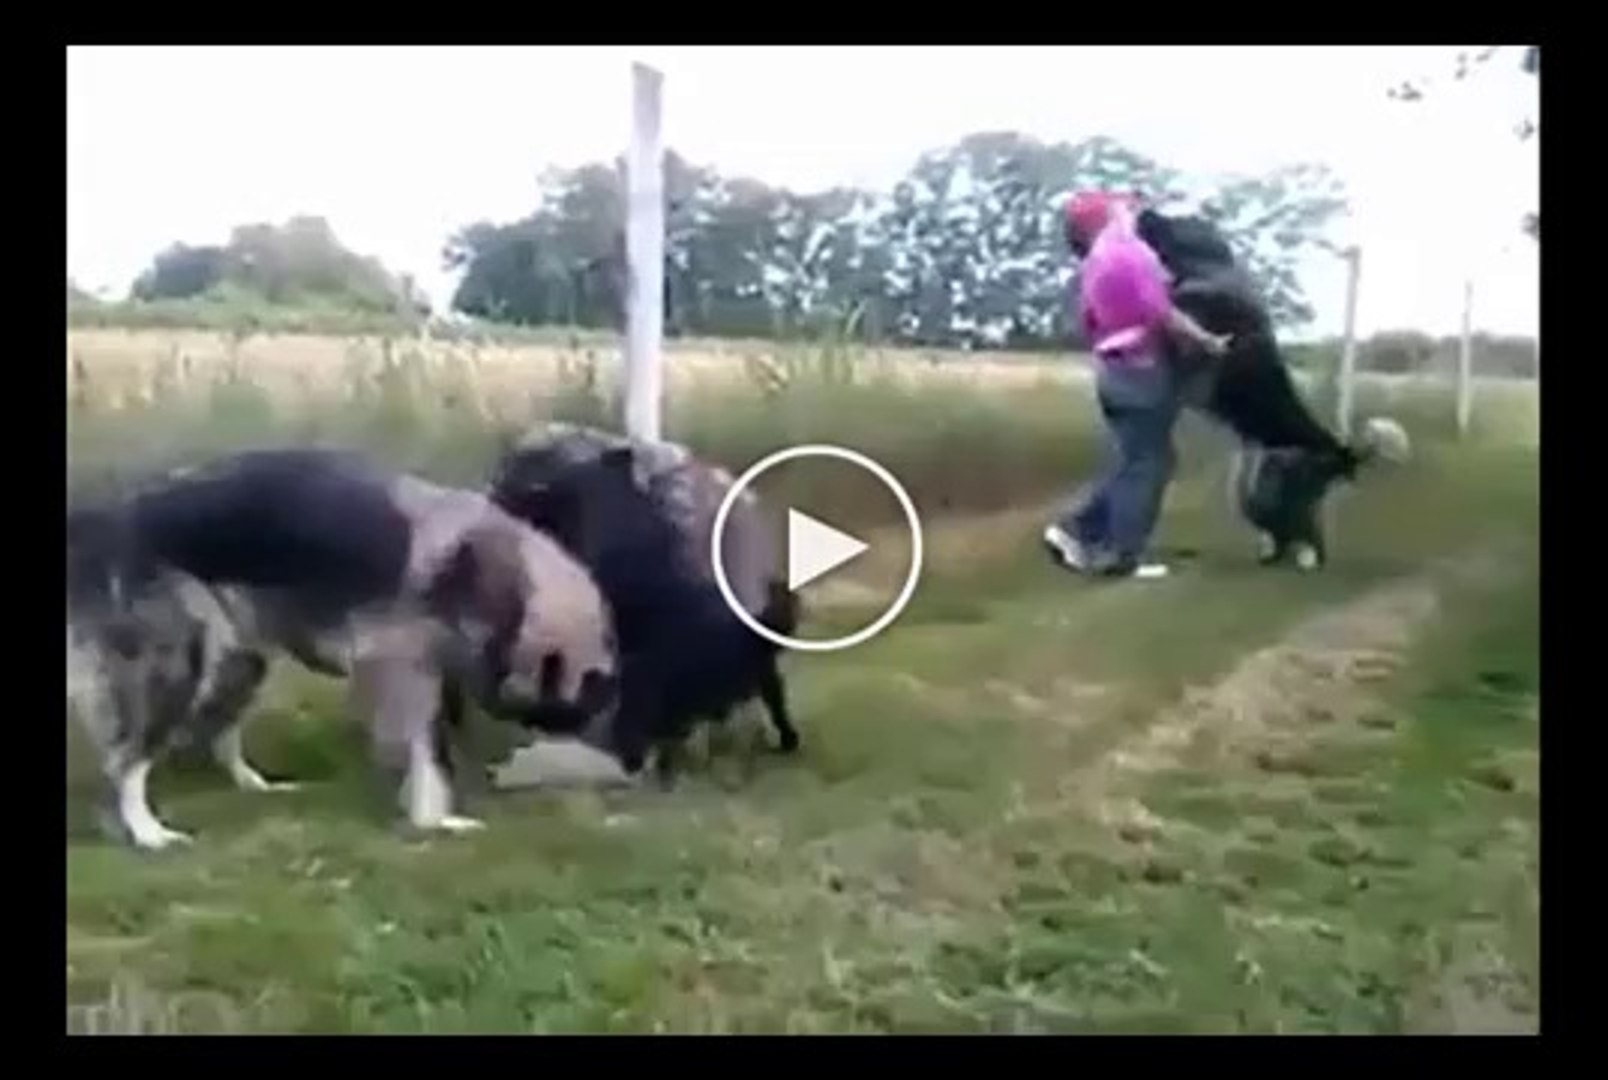 SUS KOPEKLERi vs KAFKAS COBAN KOPEKLERi - FANCY DOG vs CAUCASiAN SHEPHERD DOG